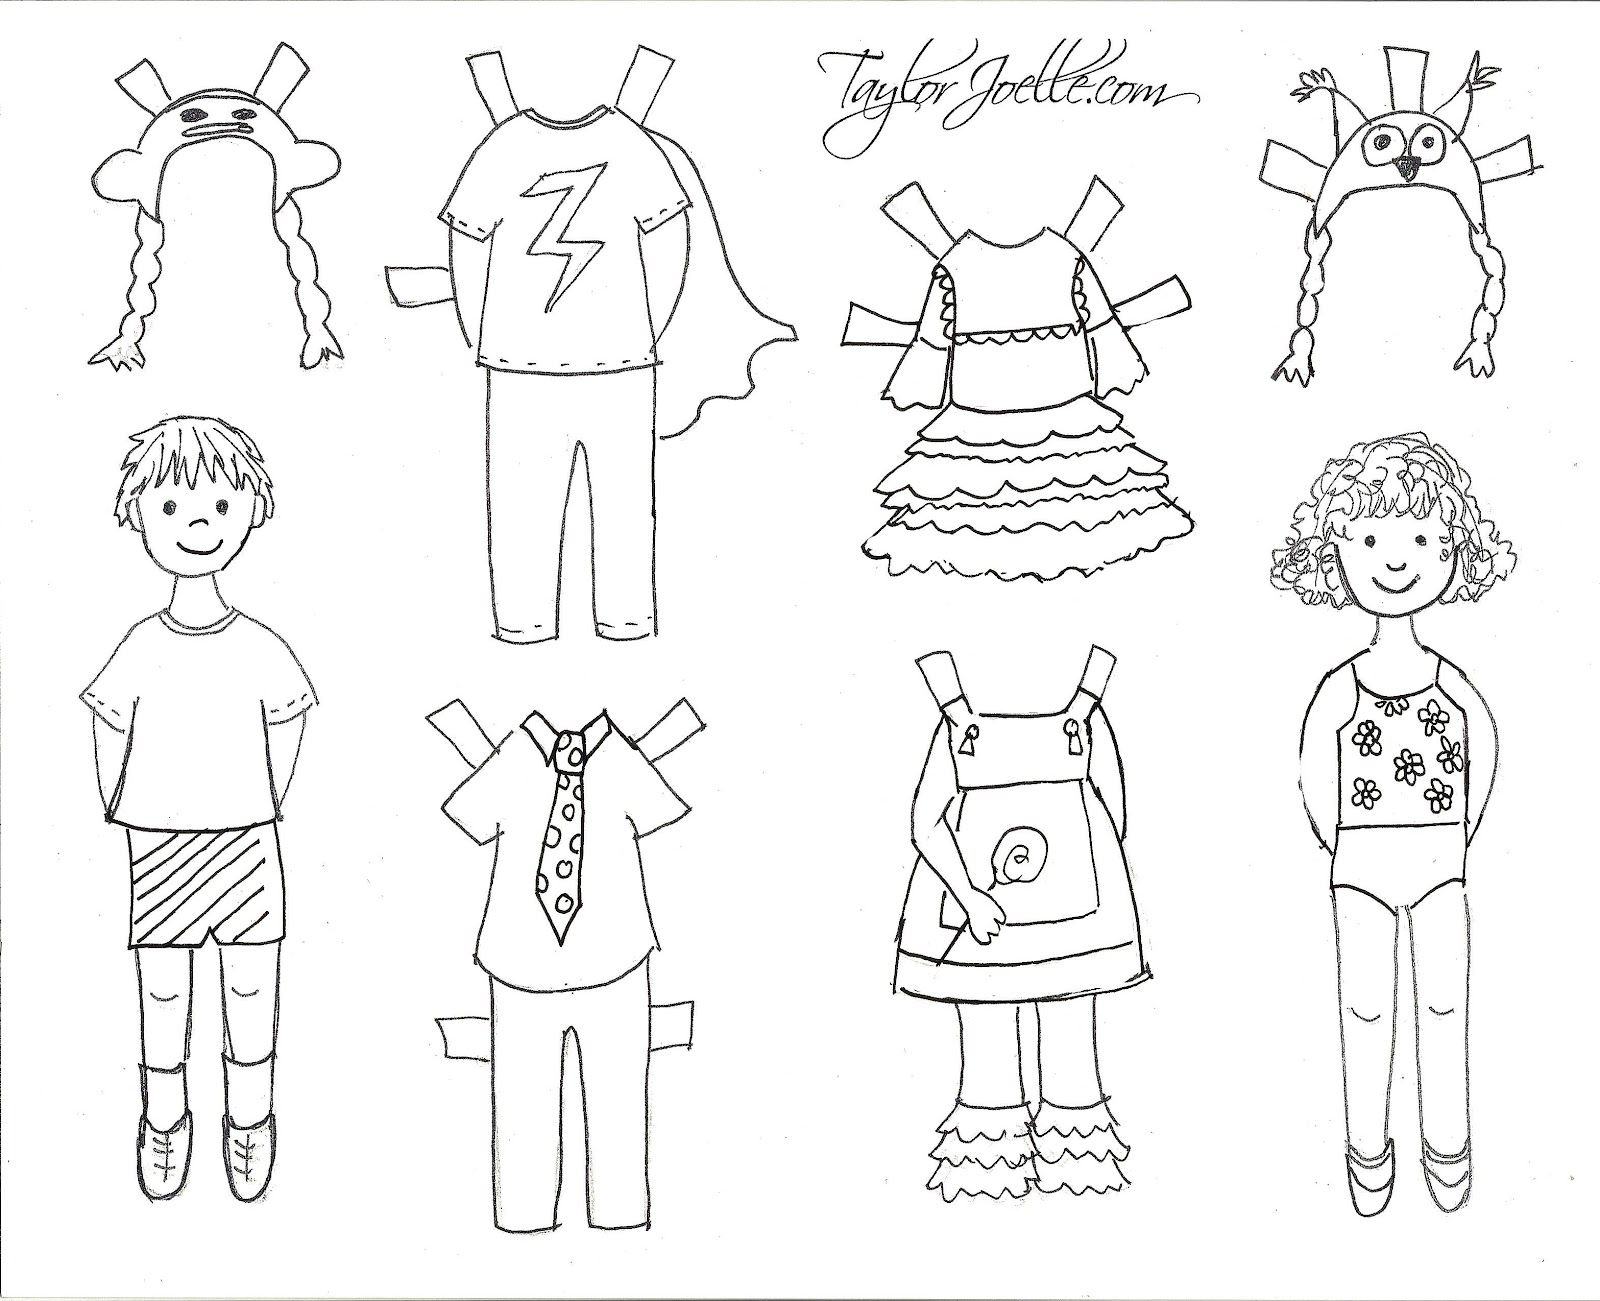 photograph about Printable Paper Dolls Template called Pinterest